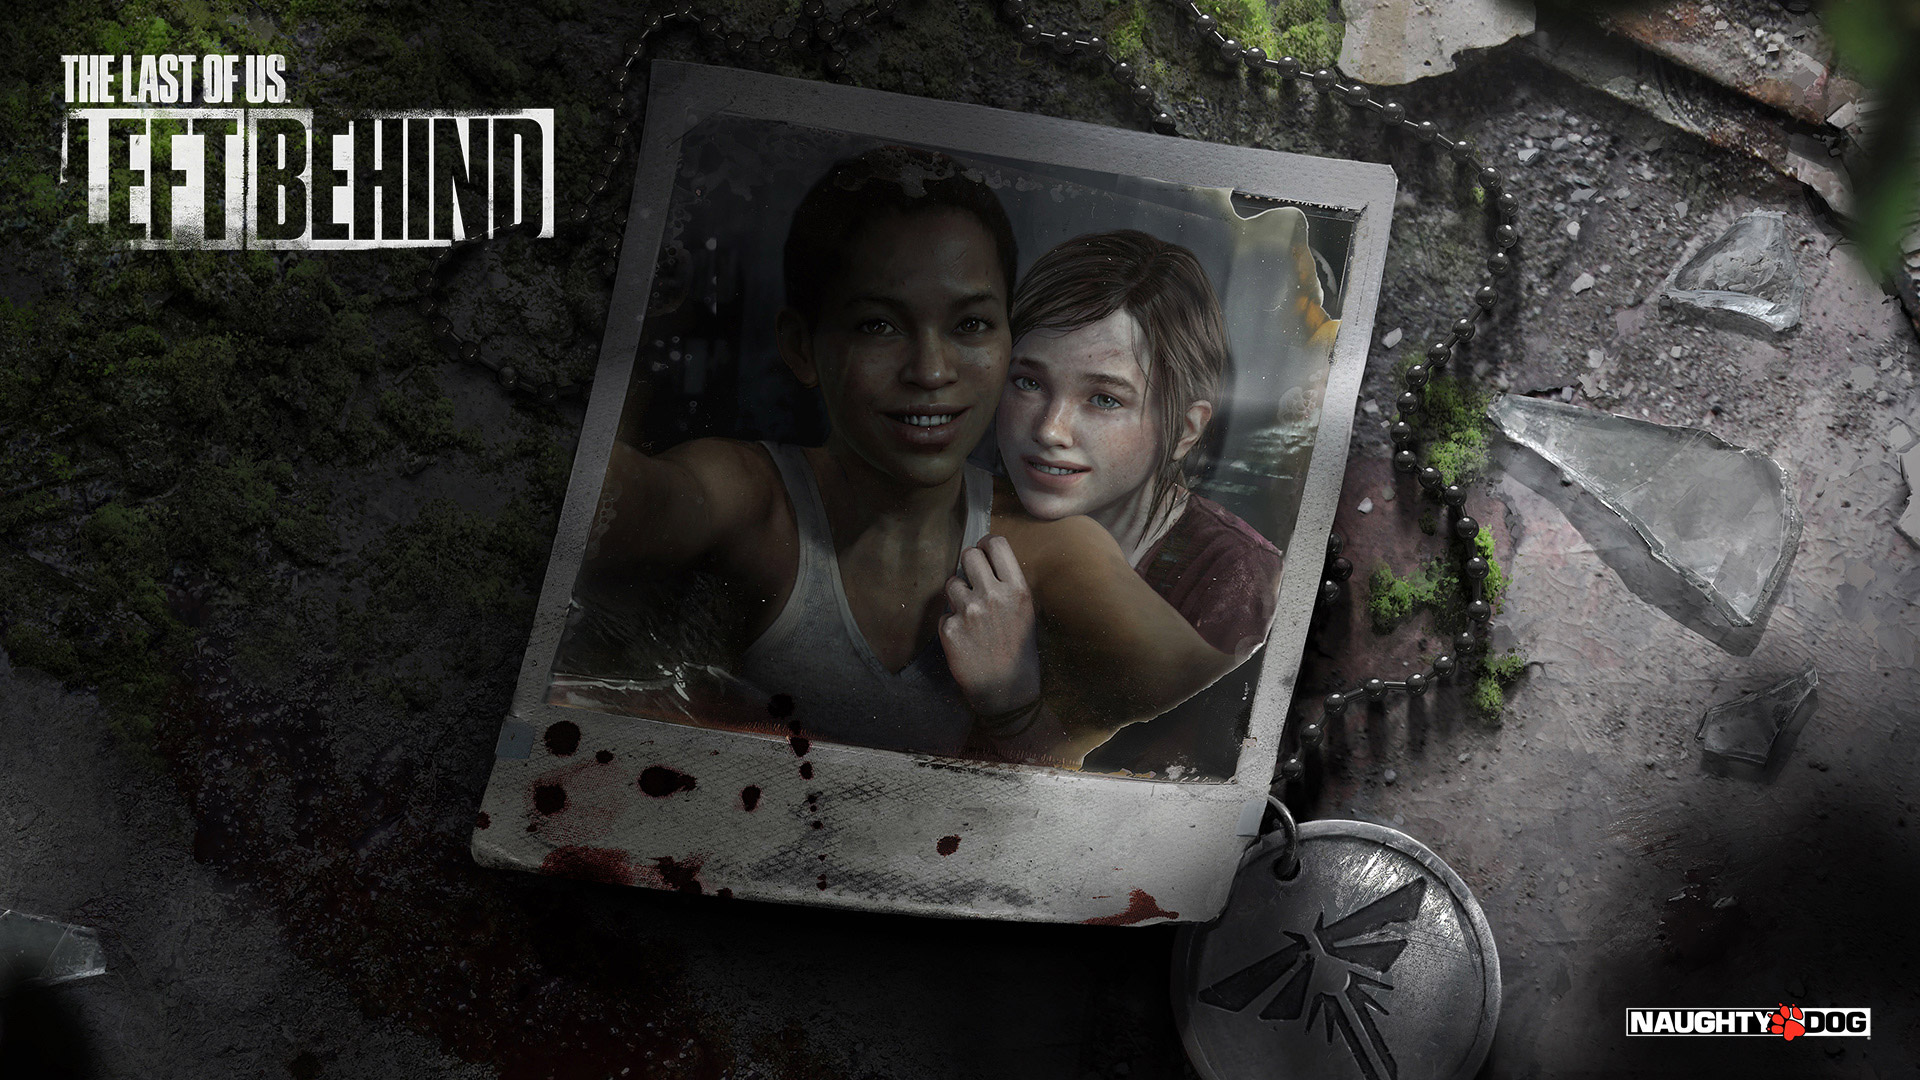 The Last of Us wallpaper 20